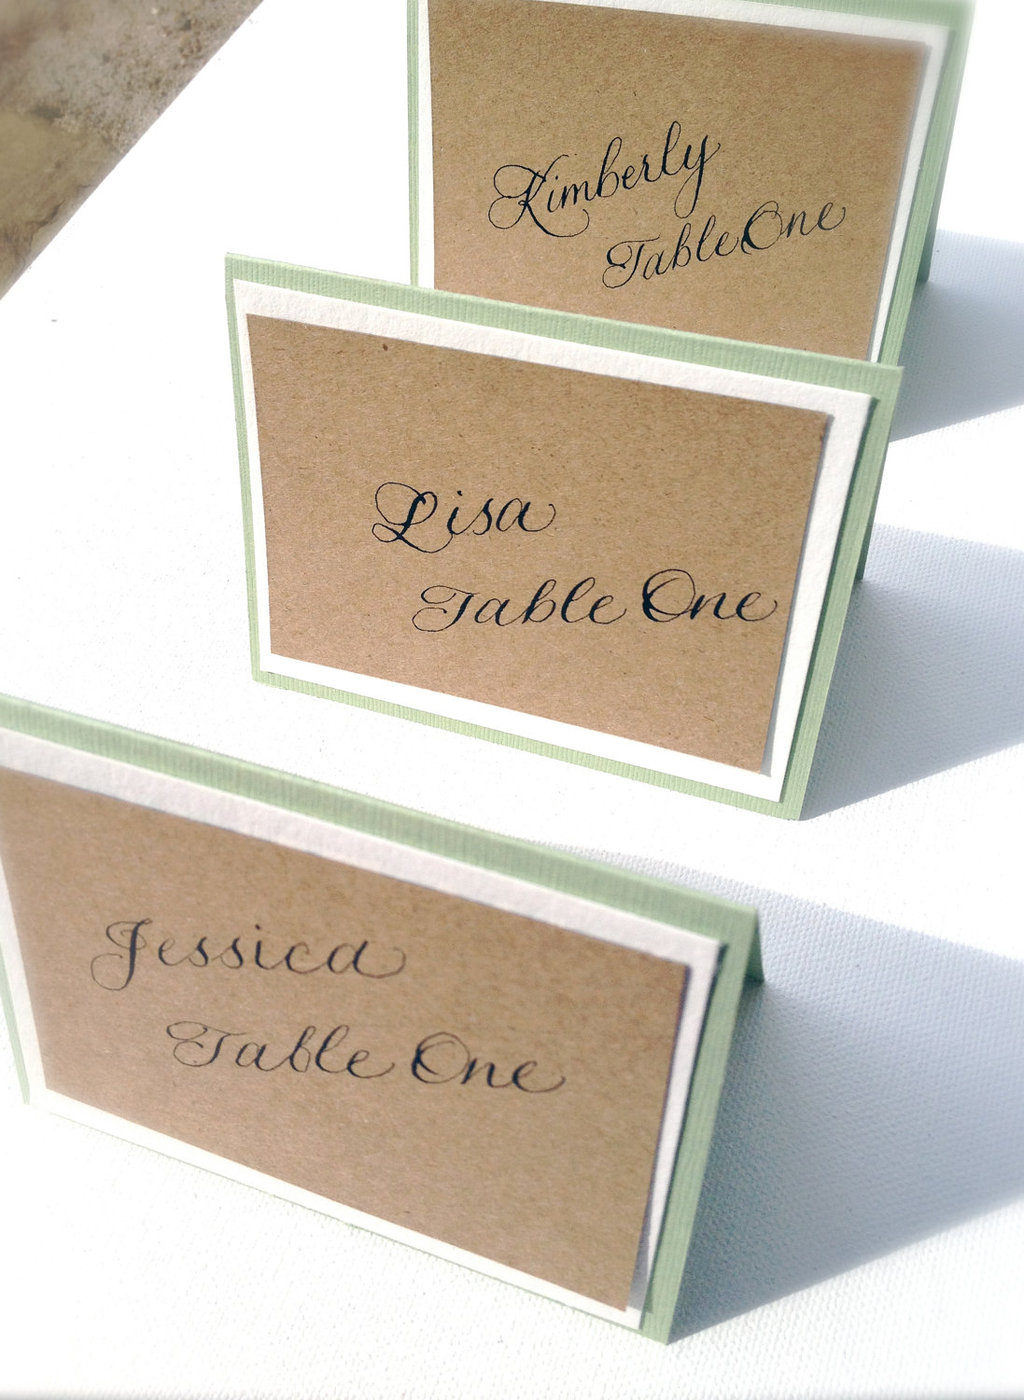 Handmade-wedding-escort-cards-etsy-wedding-stationery-natural-with-calligraphy.full